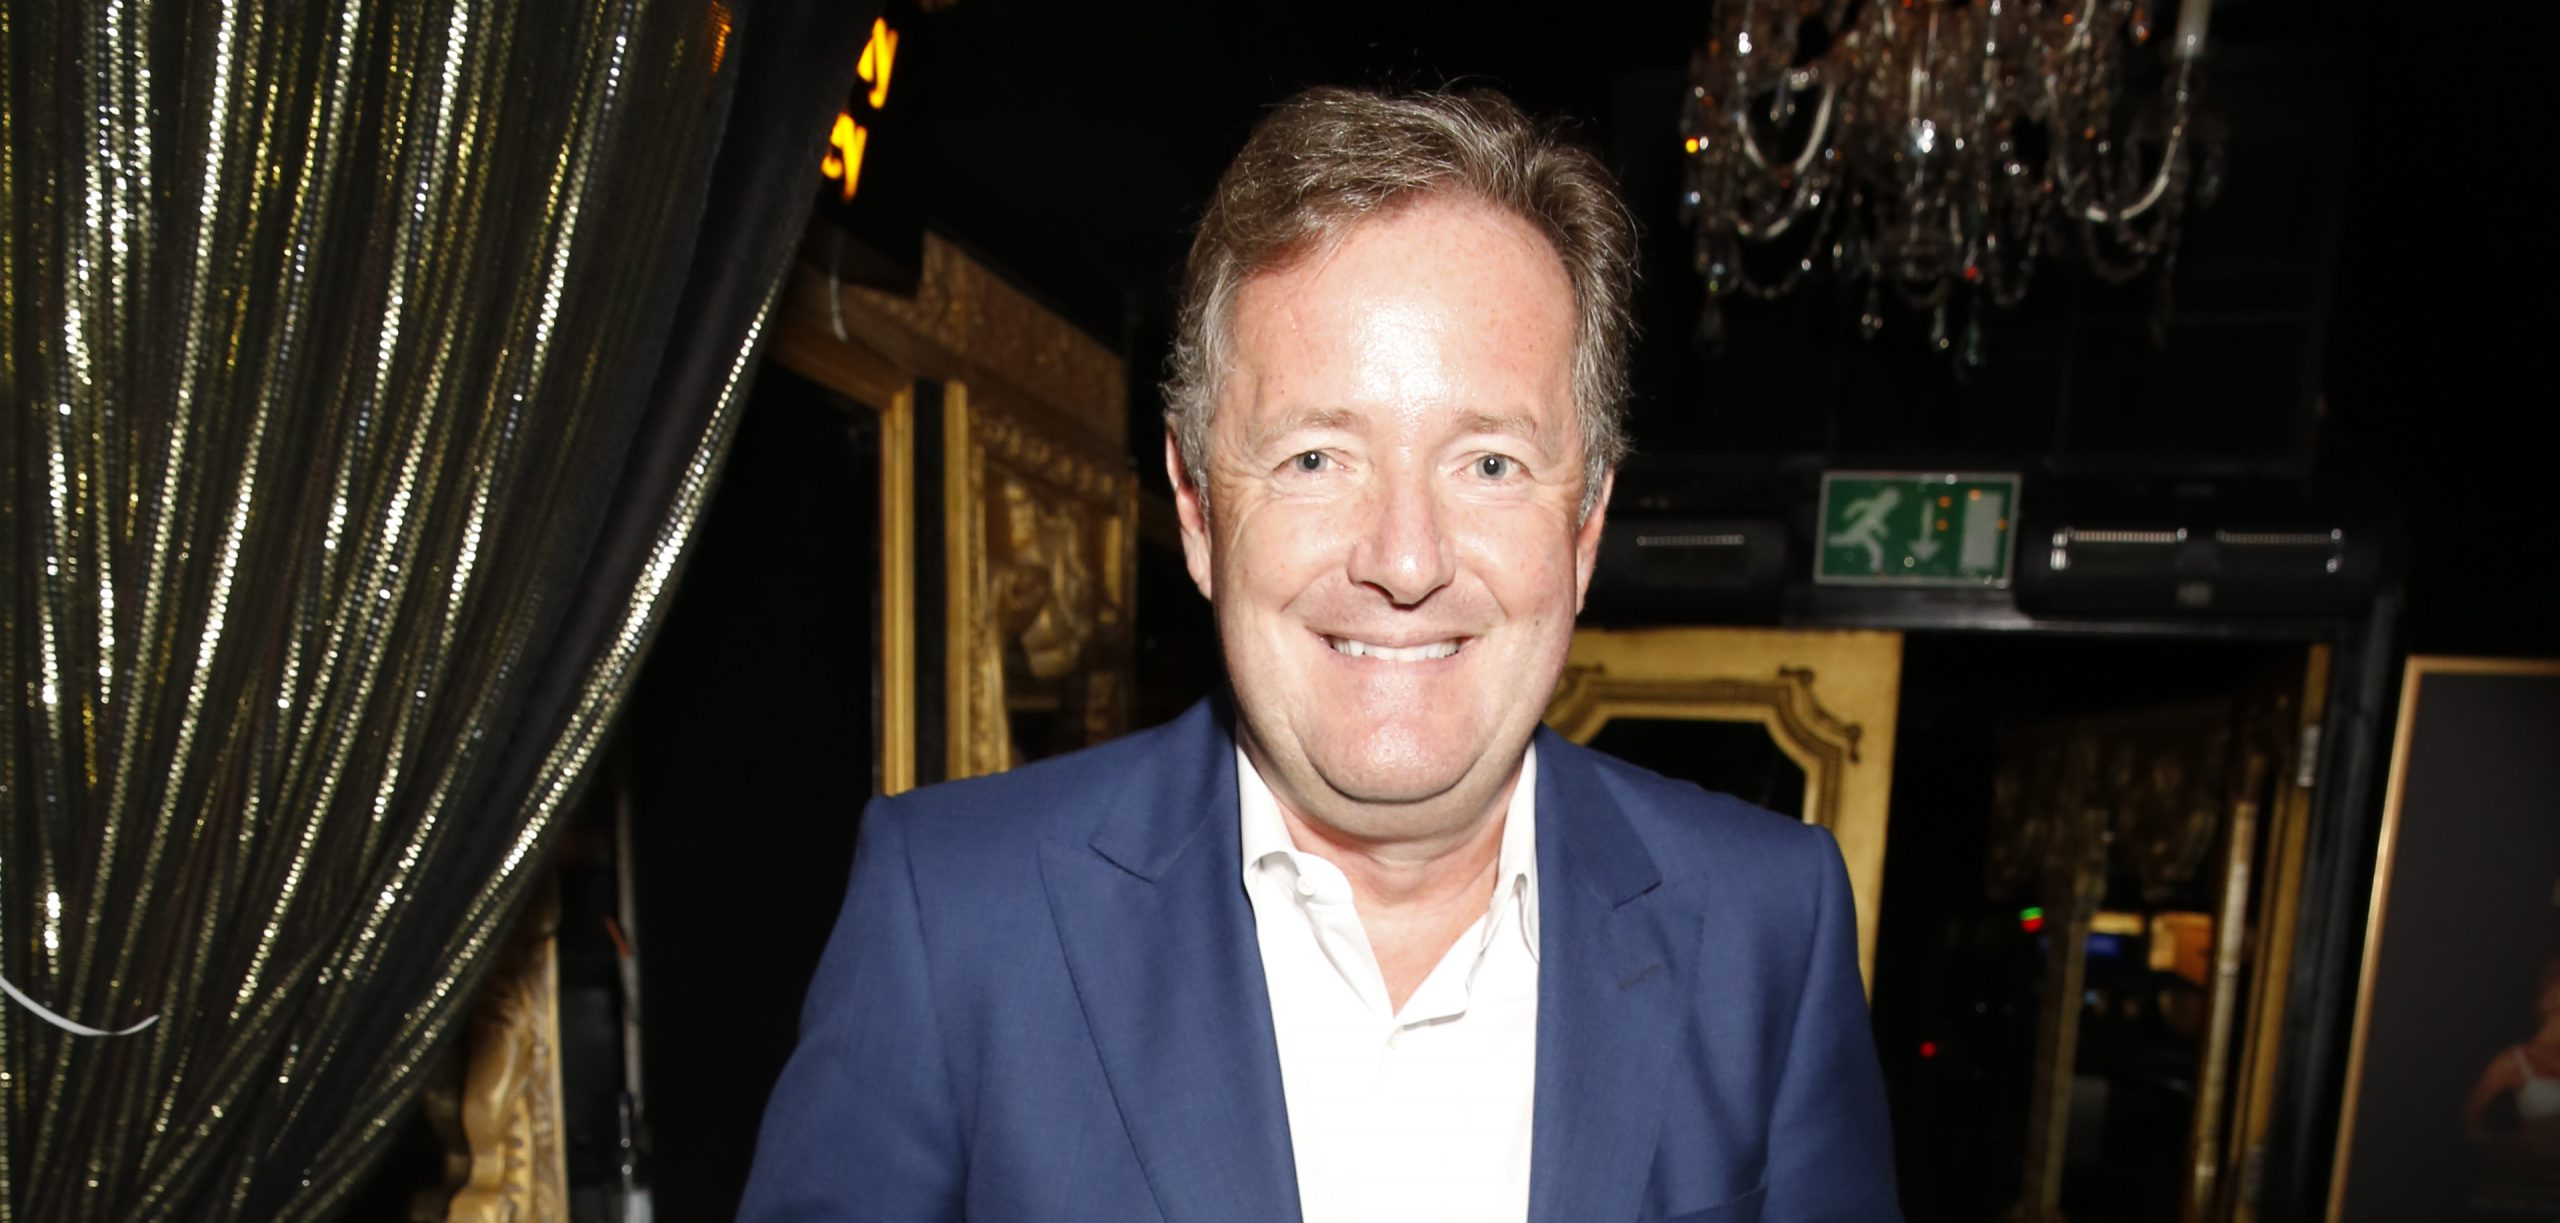 Piers Morgan gets mocked as he enjoys some daddy-daughter time at the football